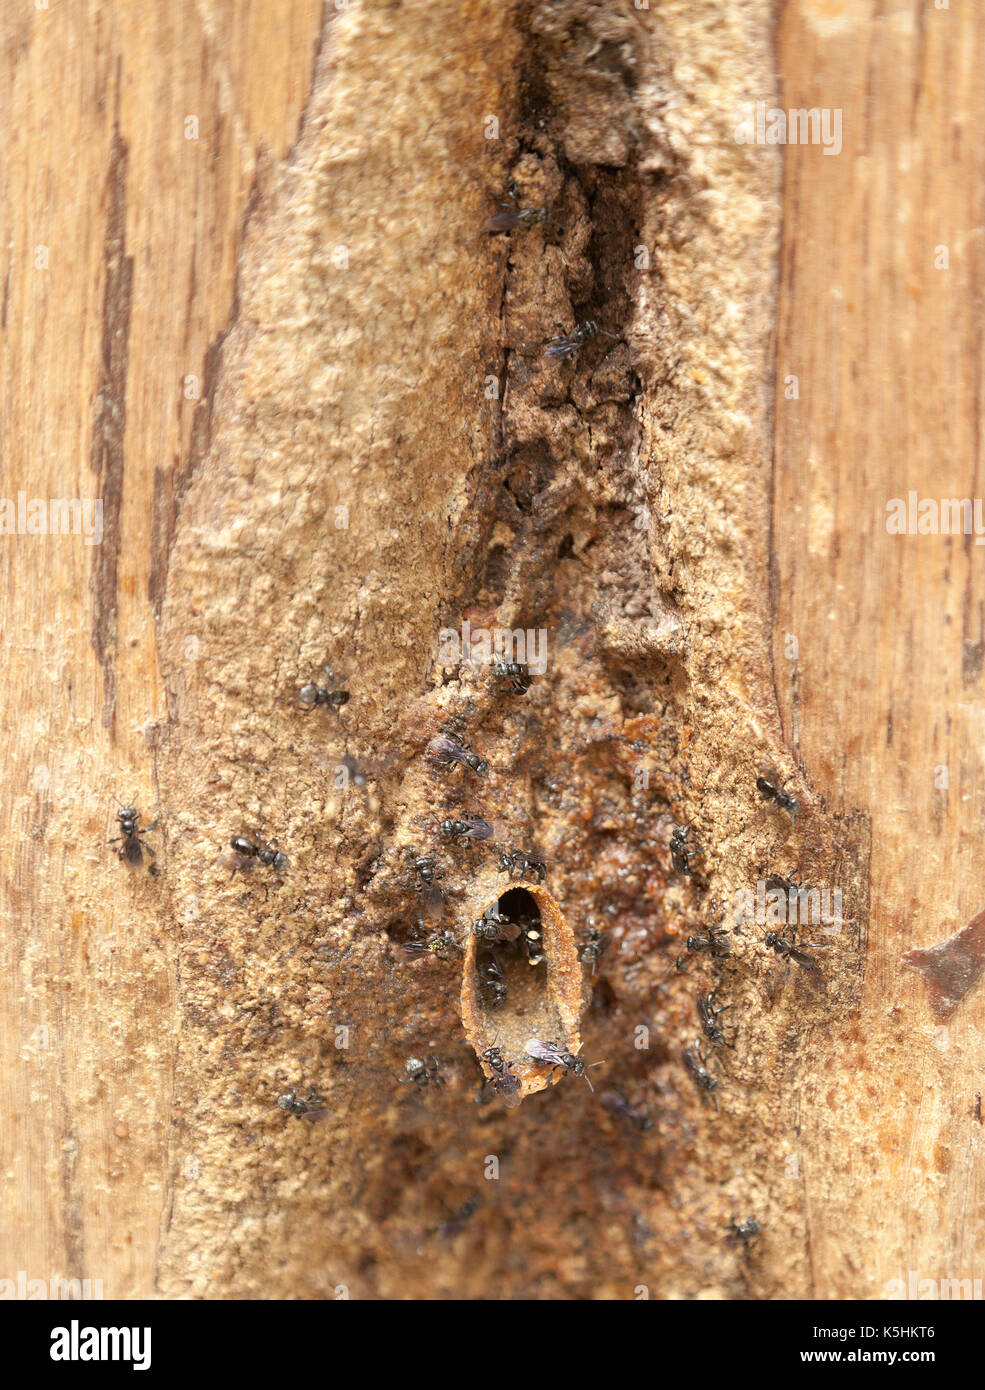 Sweat bees entering their nest in wood, Cameron Highlands, Malaysia. - Stock Image